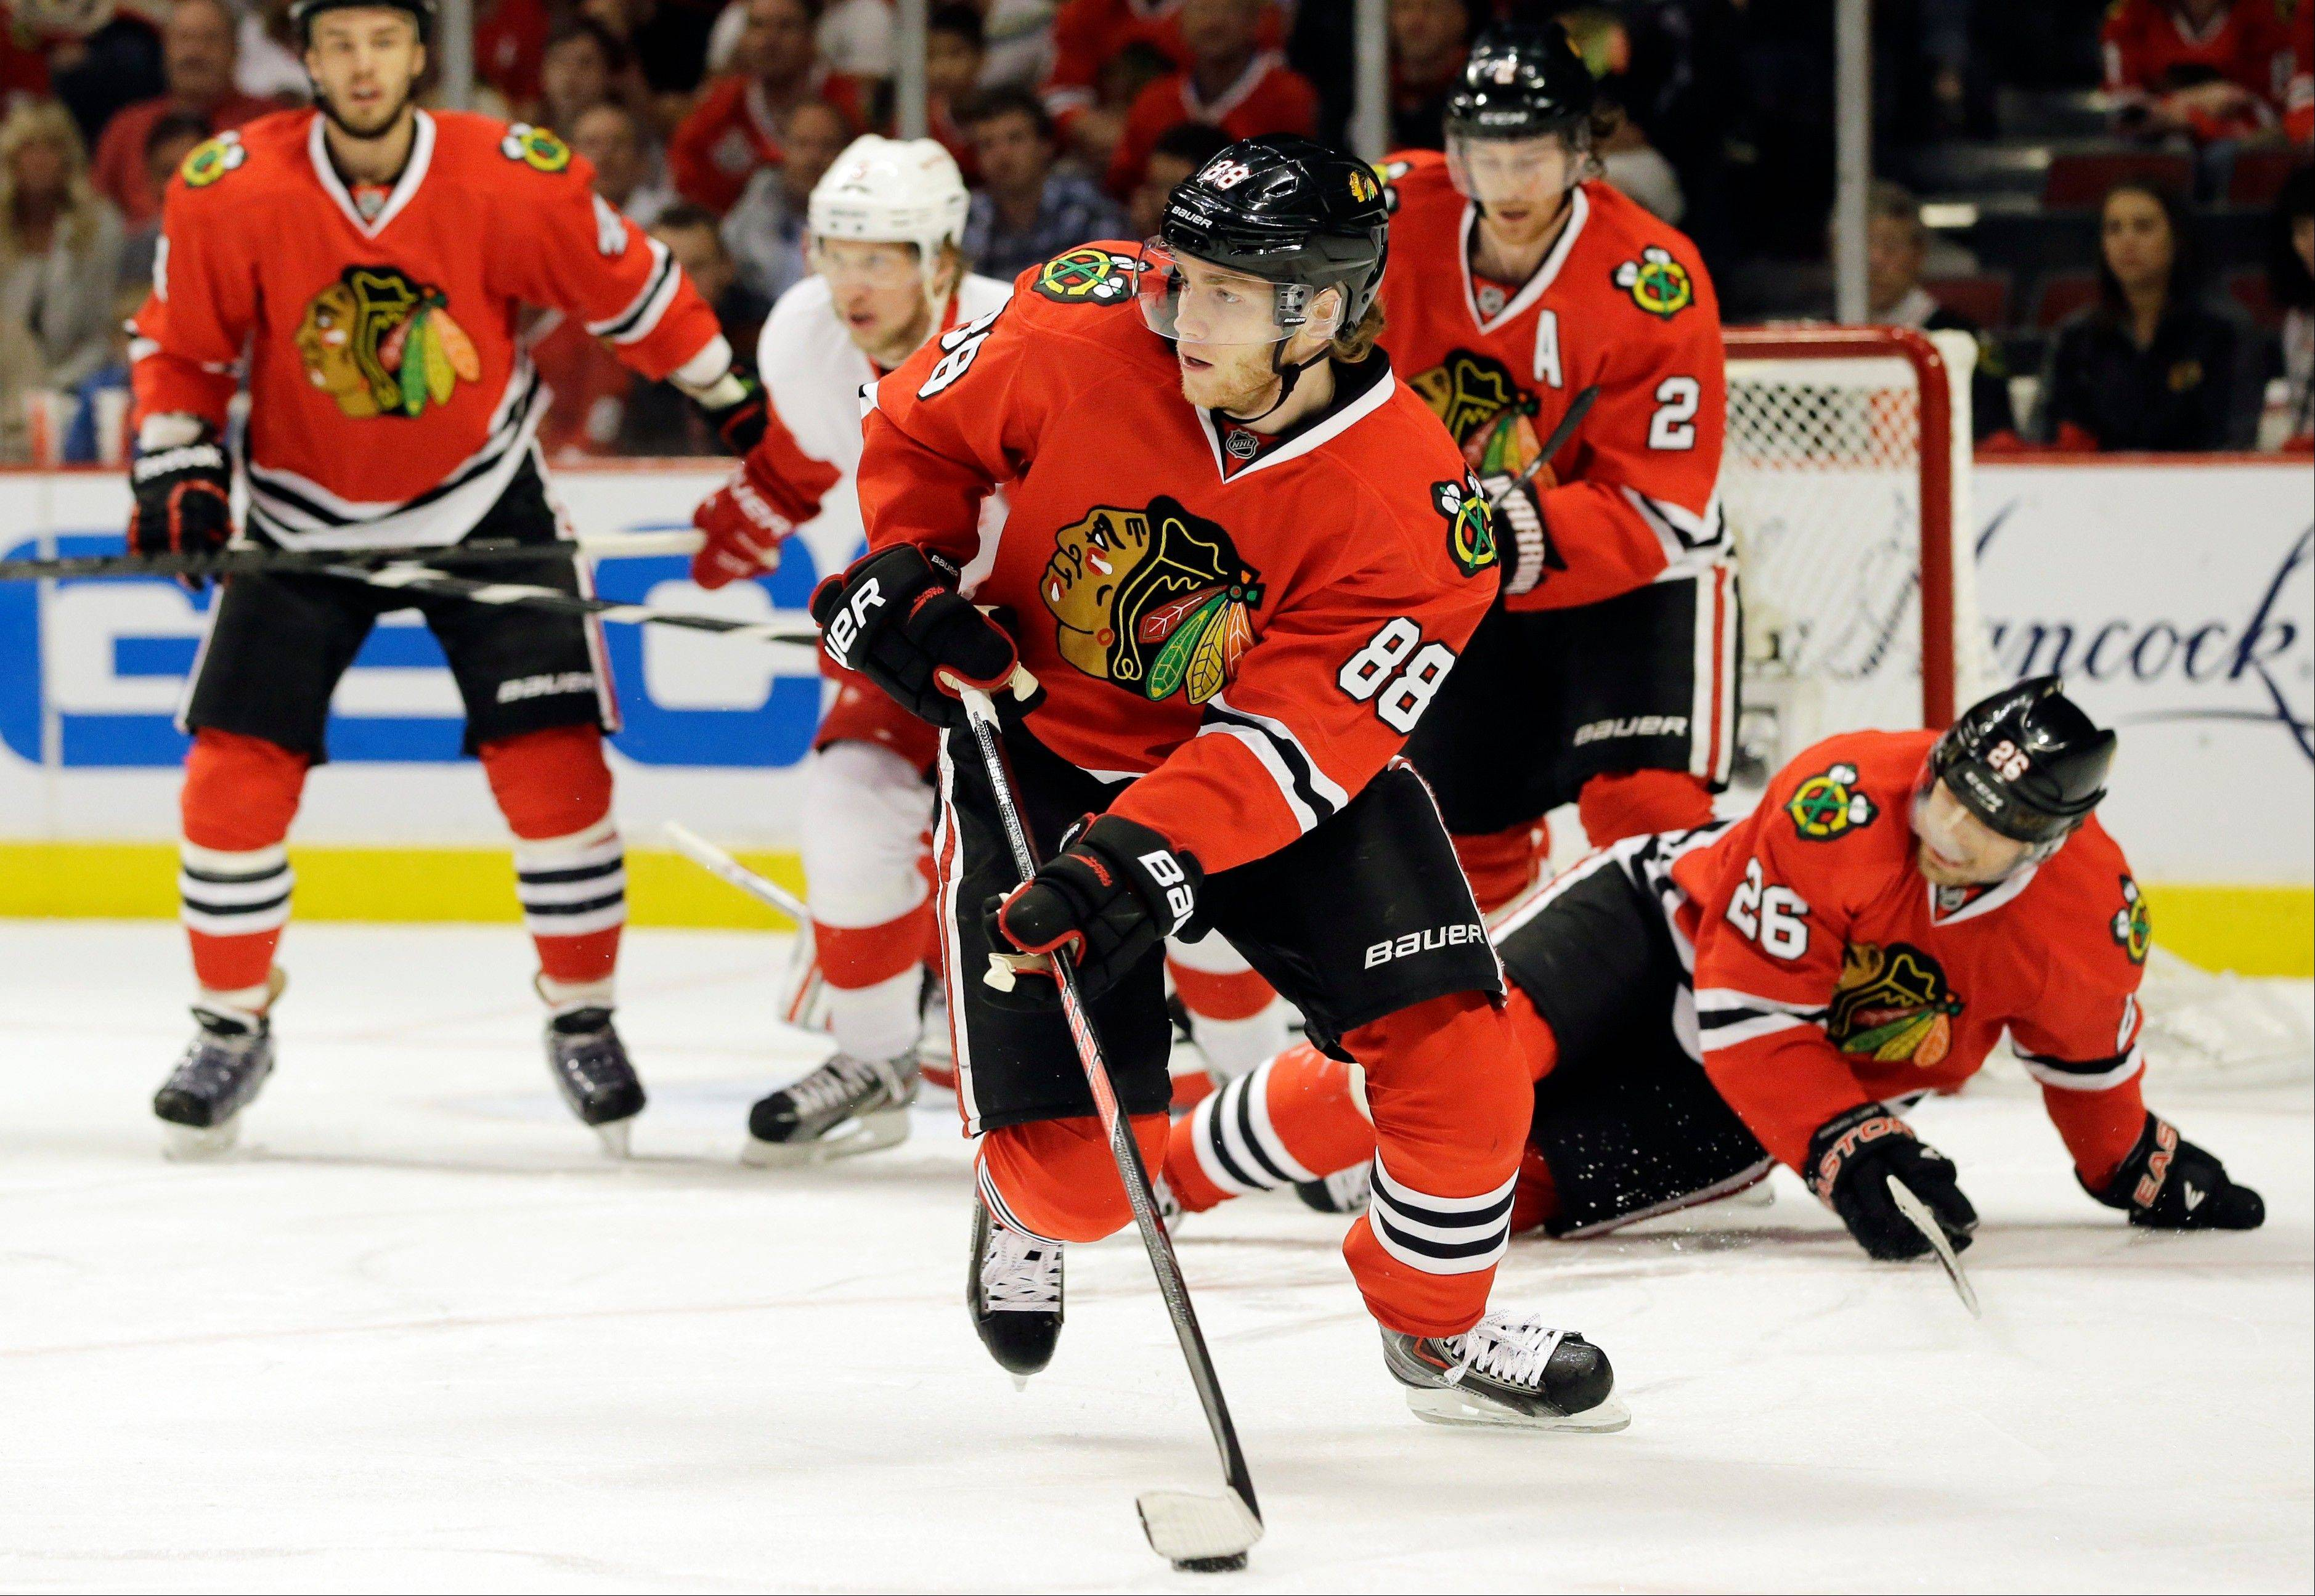 Patrick Kane looks to pass during the first period of Game 2.